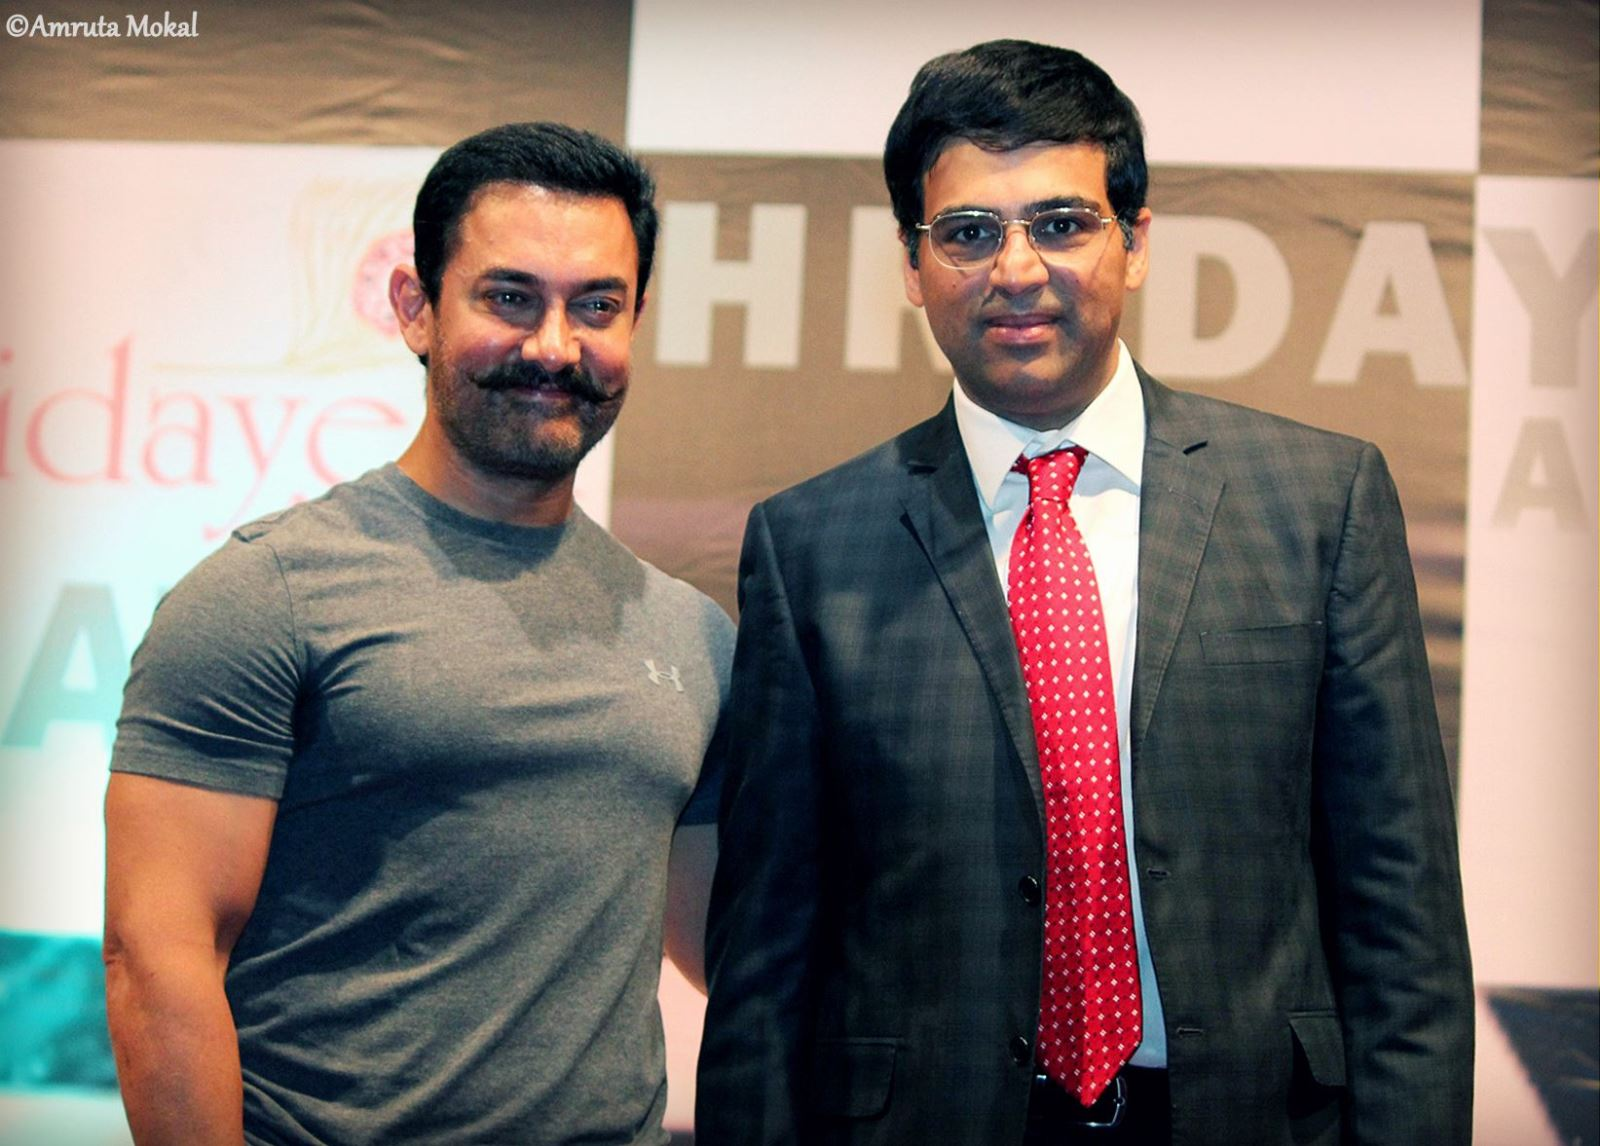 Aamir Khan with Anand